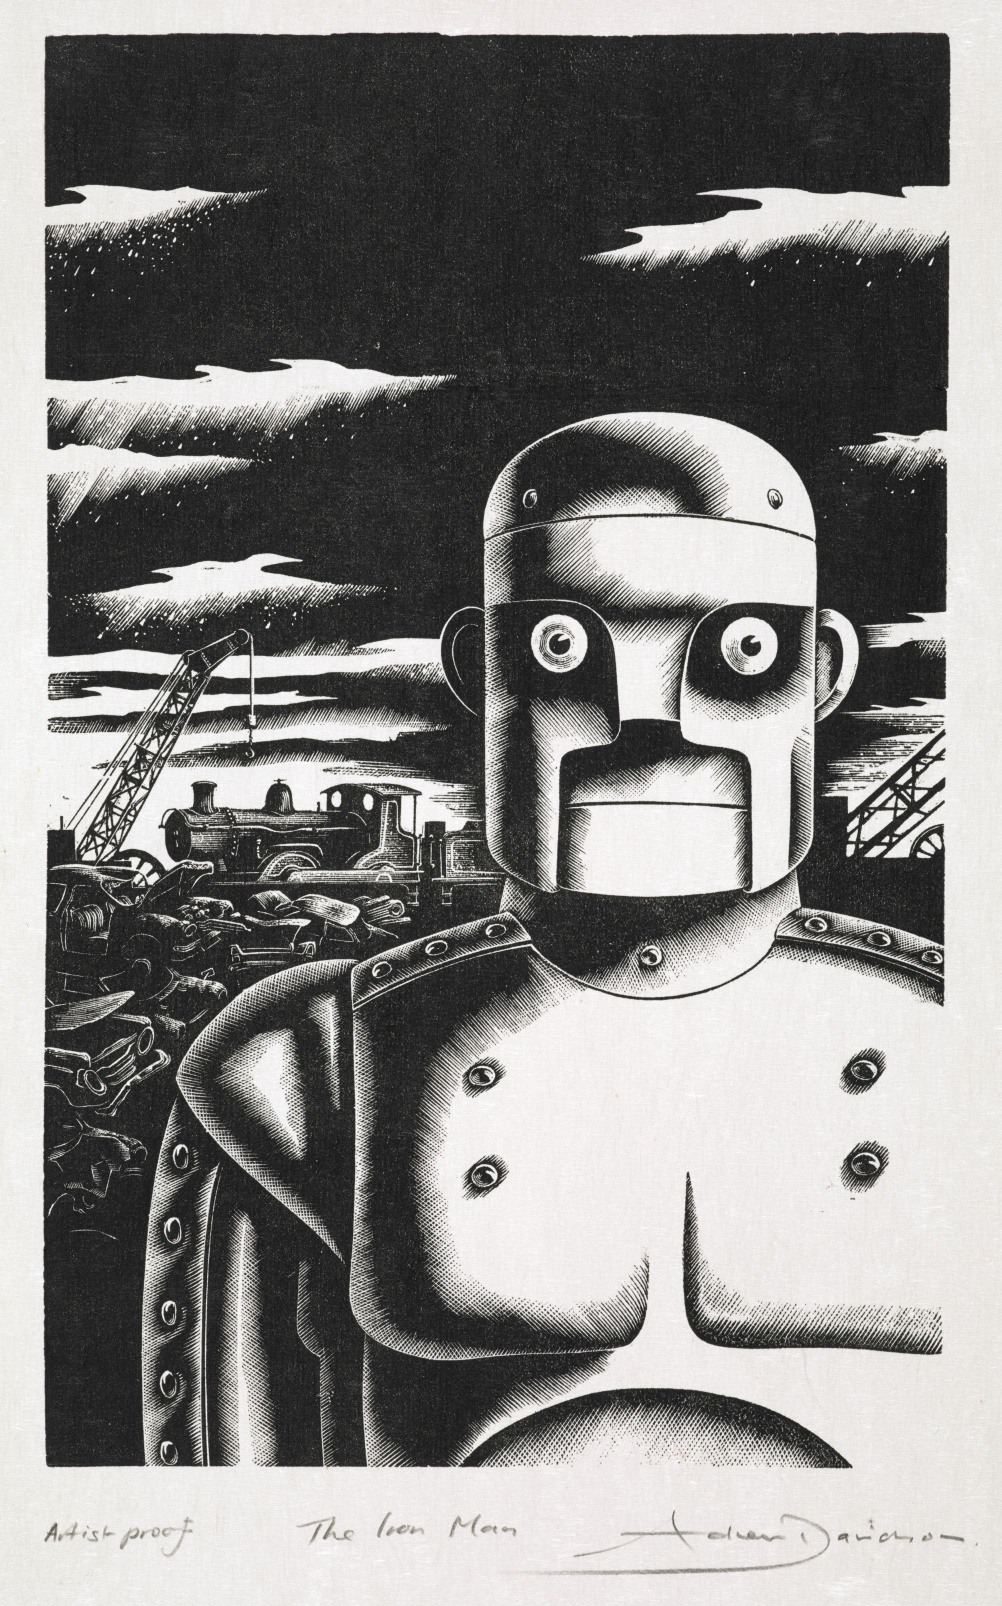 Original artwork from The Iron Man by Ted Hughes. Published by Faber and Faber, 1985. Illustration by Andrew Davidson